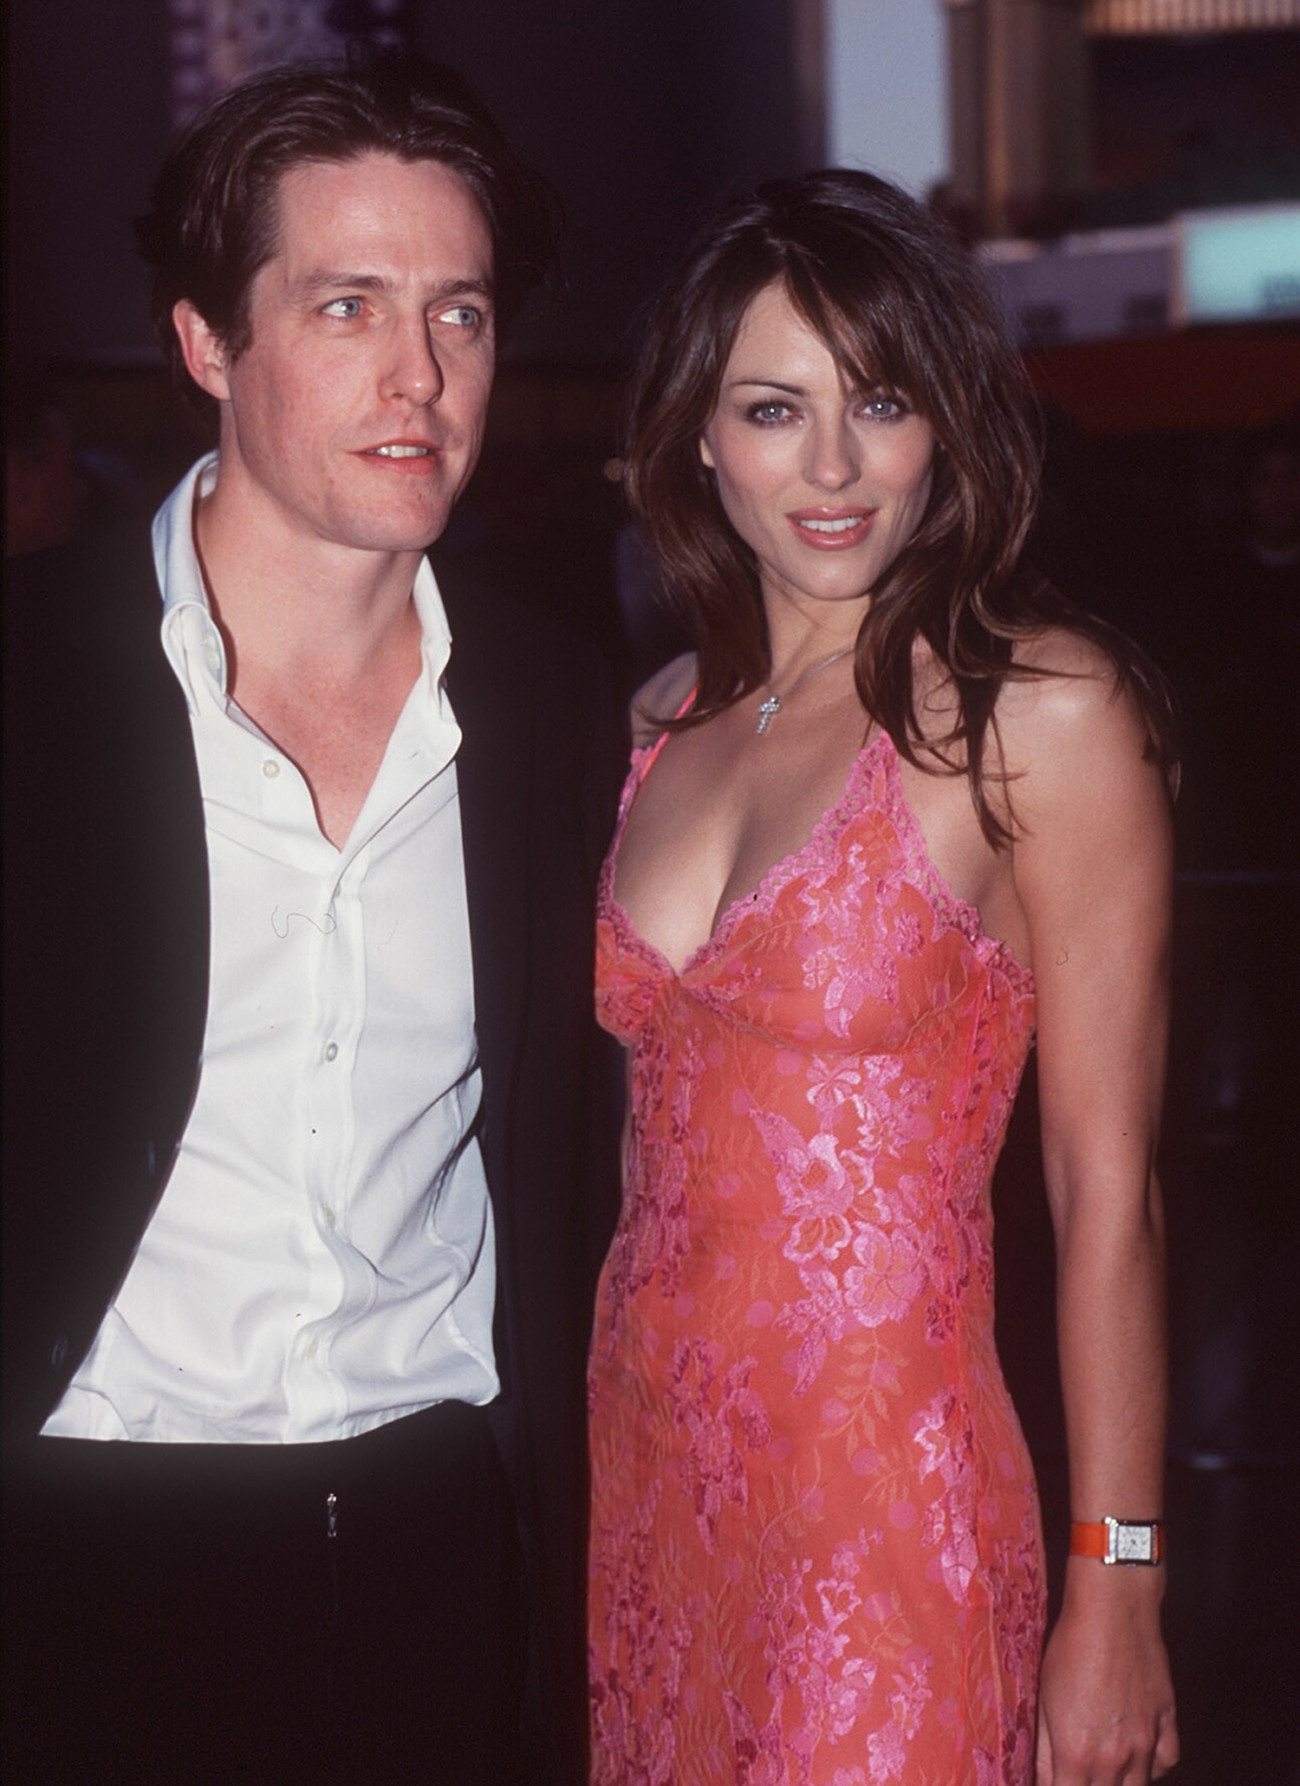 SYDNEY - OCTOBER 01:  Elizabeth Hurley and Hugh Grant at the Sydney movie premiere of 'Mickey Blue Eyes'. (Photo by Patrick Riviere/Getty Images). *** Local Caption *** Elizabeth Hurley;Hugh Grant